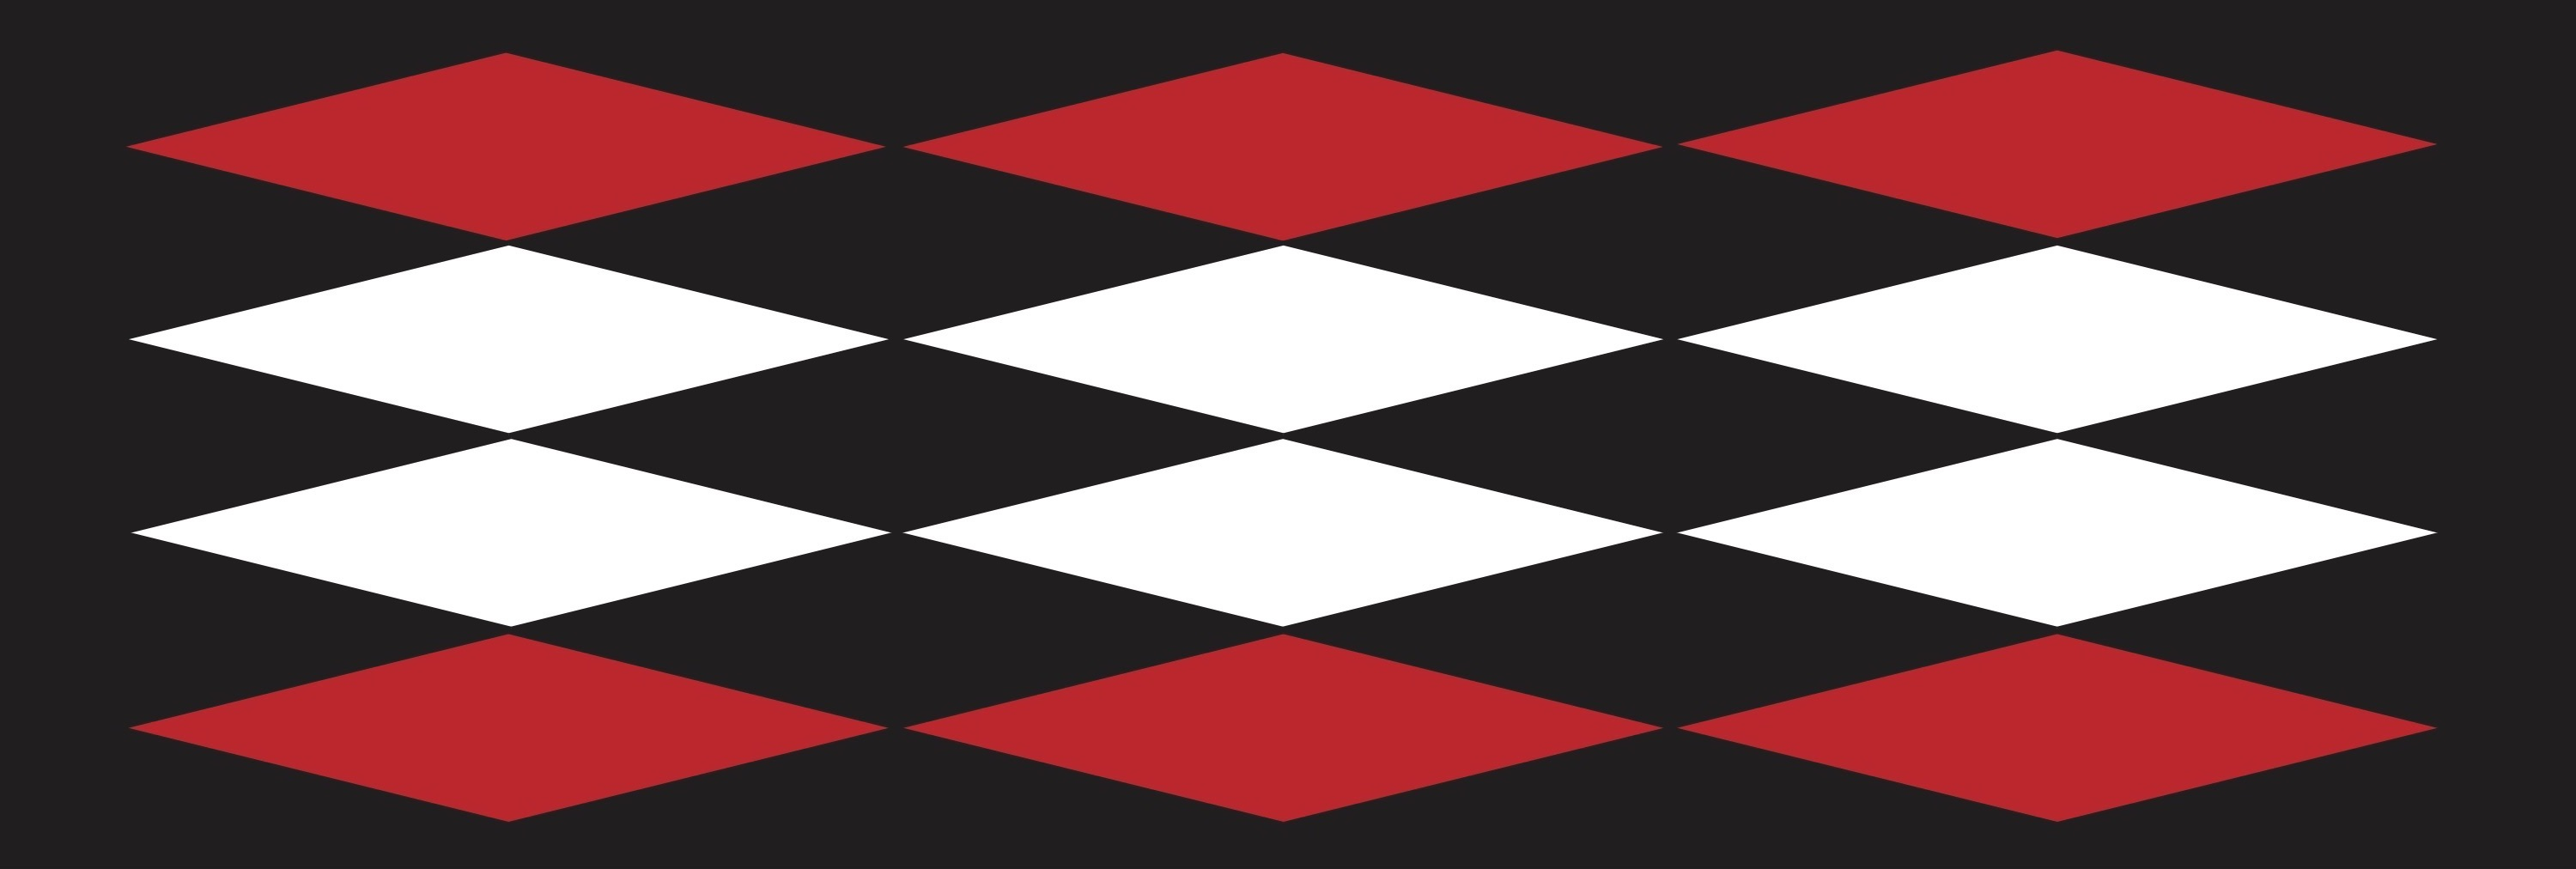 A black background with a series of red and white diamonds creating a